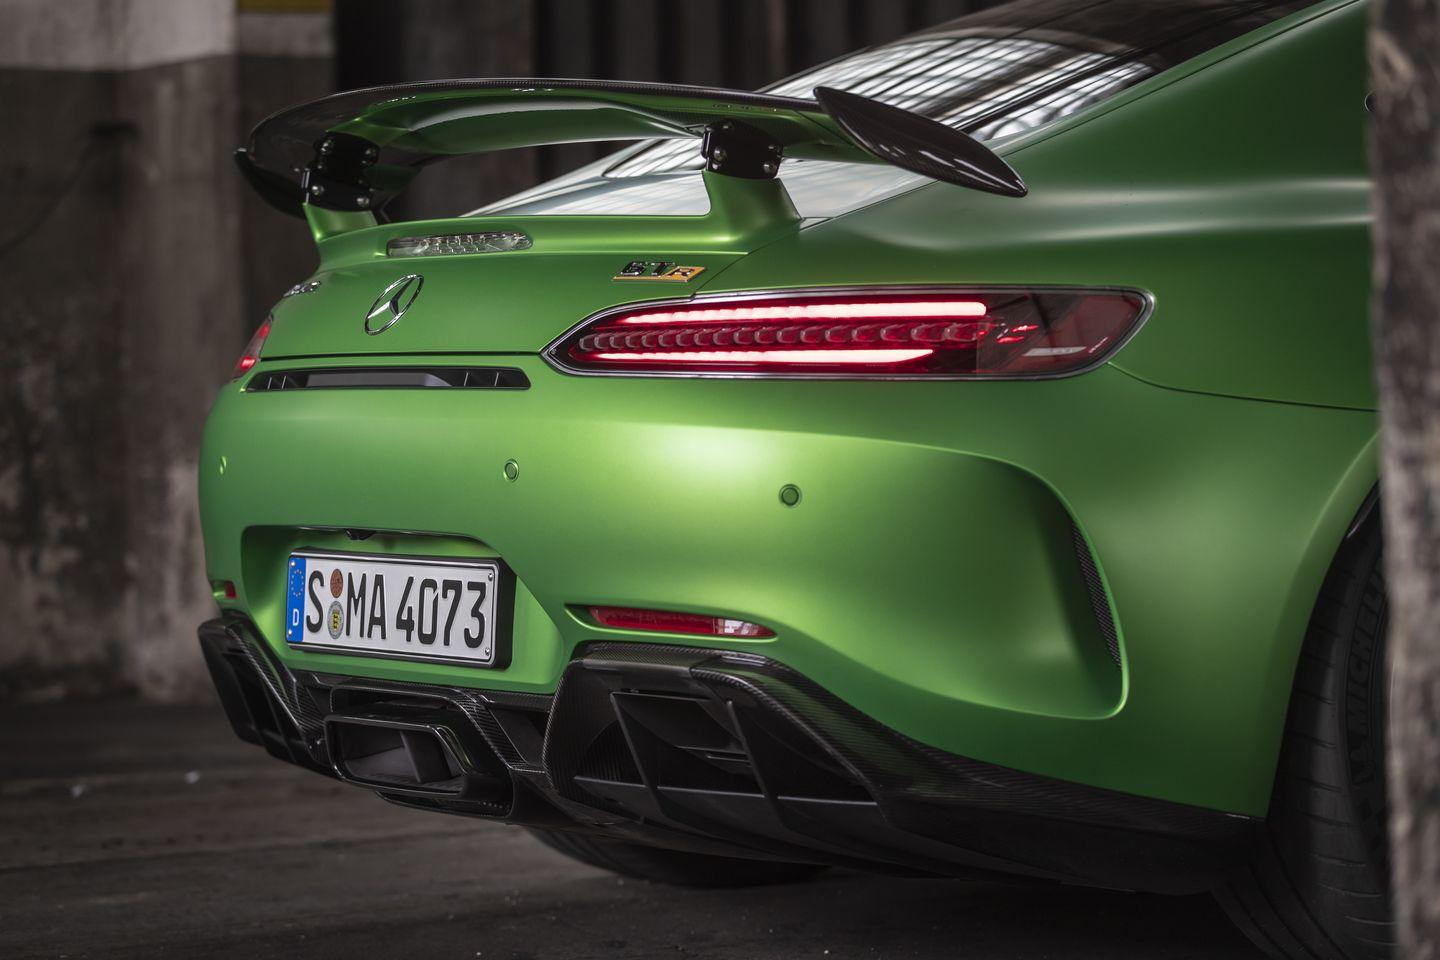 """<p>The GT R's center-exit exhaust is evocative on its own. But not many people notice the two additional square pipes that exit out of the diffuser on either side. These square pipes open up only when you switch the exhaust system to 'race' mode. <a href=""""https://www.ebay.com/itm/2018-Mercedes-Benz-AMG-GTR-Coupe/153575238247?hash=item23c1cc2a67:g:RWcAAOSwQHBdNLbW"""" rel=""""nofollow noopener"""" target=""""_blank"""" data-ylk=""""slk:Here's a lightly used GT R"""" class=""""link rapid-noclick-resp"""">Here's a lightly used GT R</a> on eBay you can own right now. </p>"""